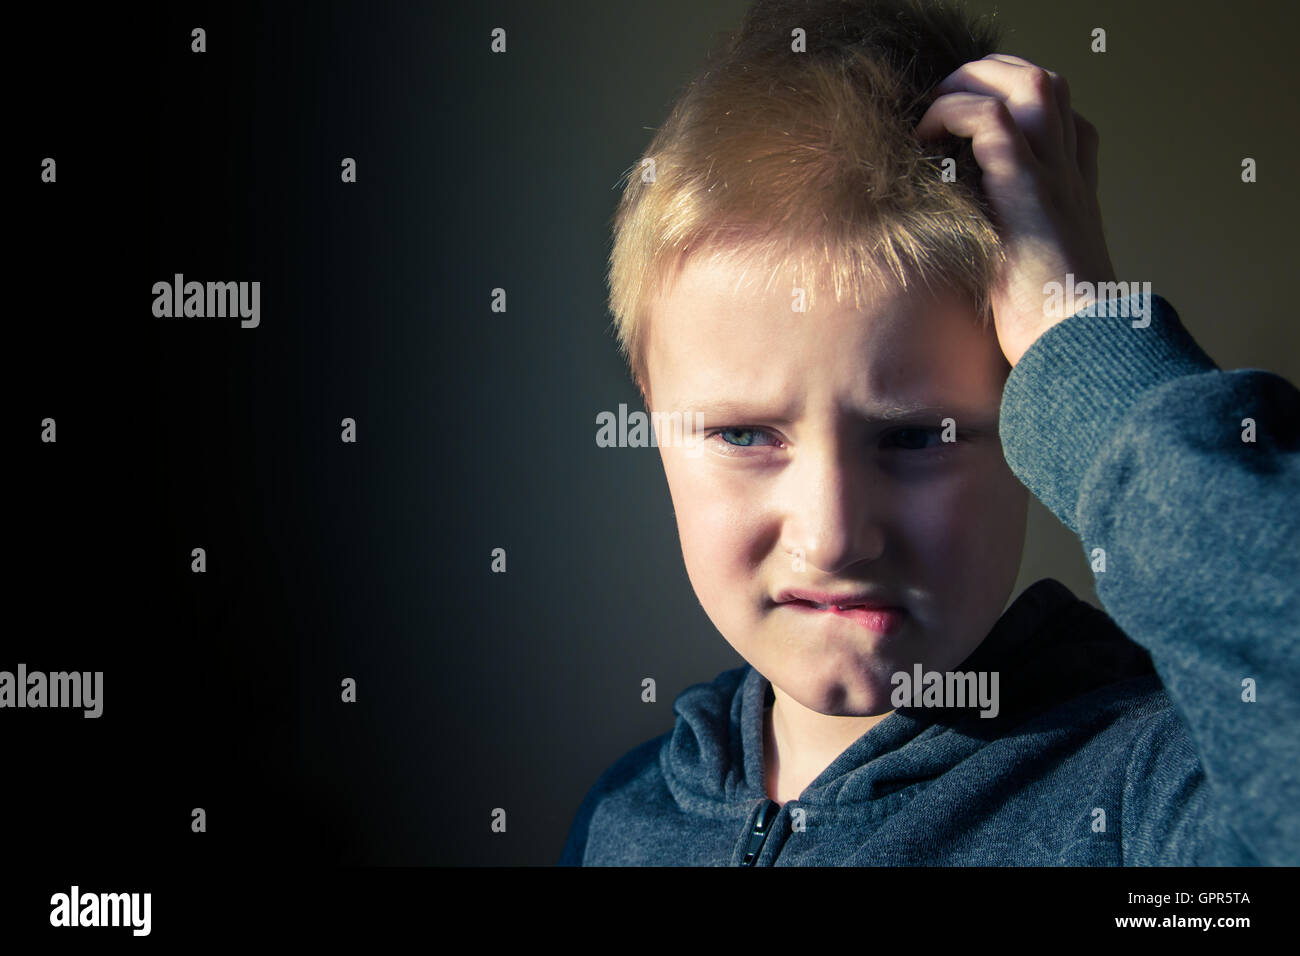 Boy (teen, kid) scratching head confused in trouble over dark background with copy space - Stock Image